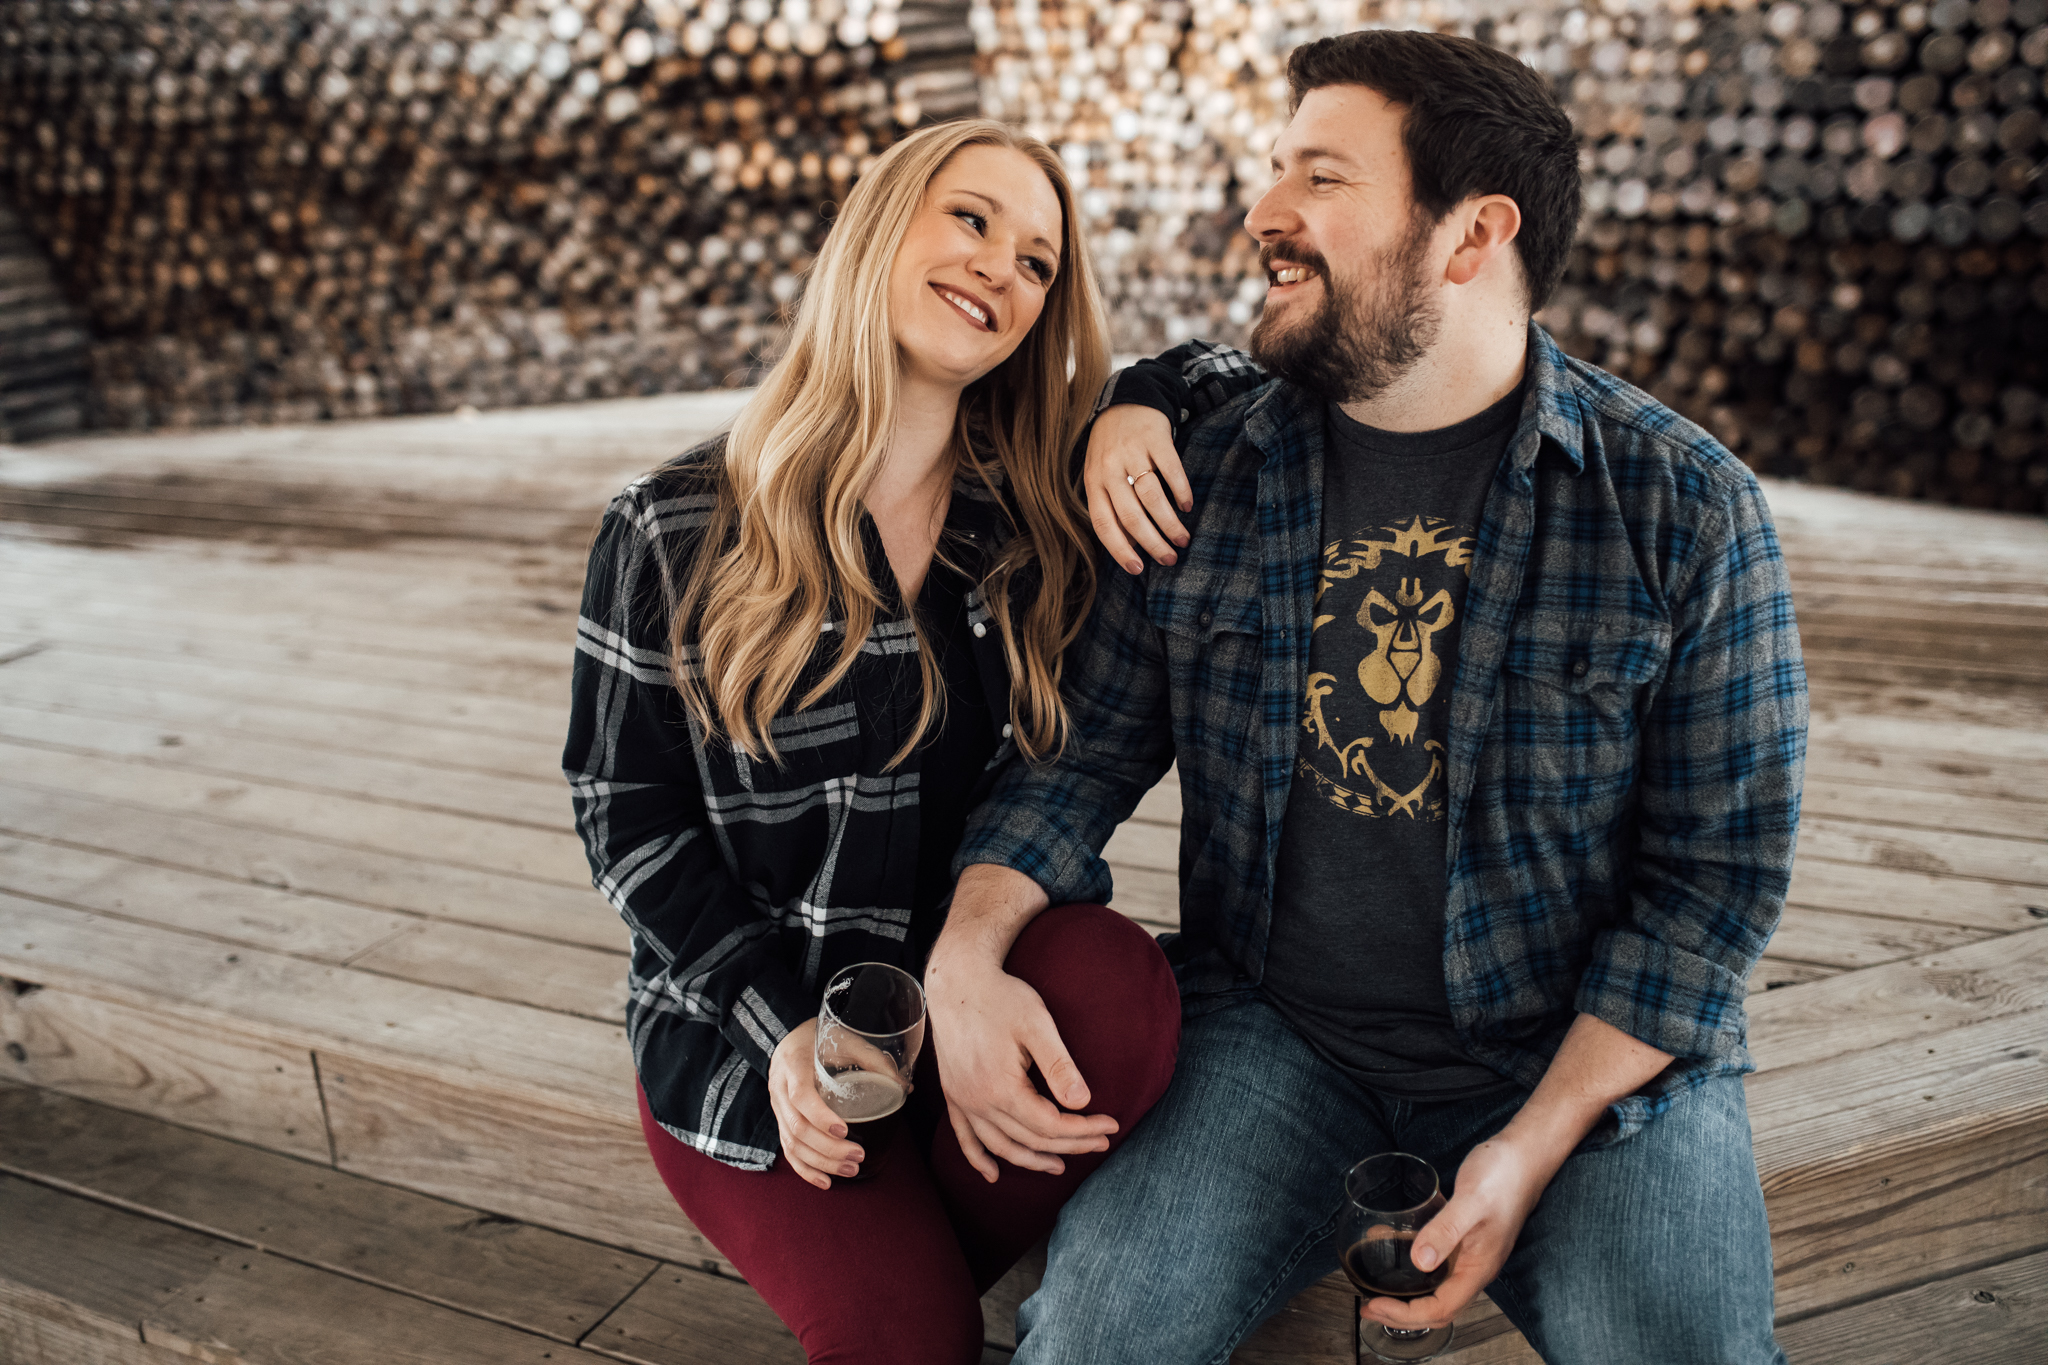 wiseacre-brewing-wedding-photographer-the-warmth-around-you-cassie-cook-photography (9 of 64).jpg